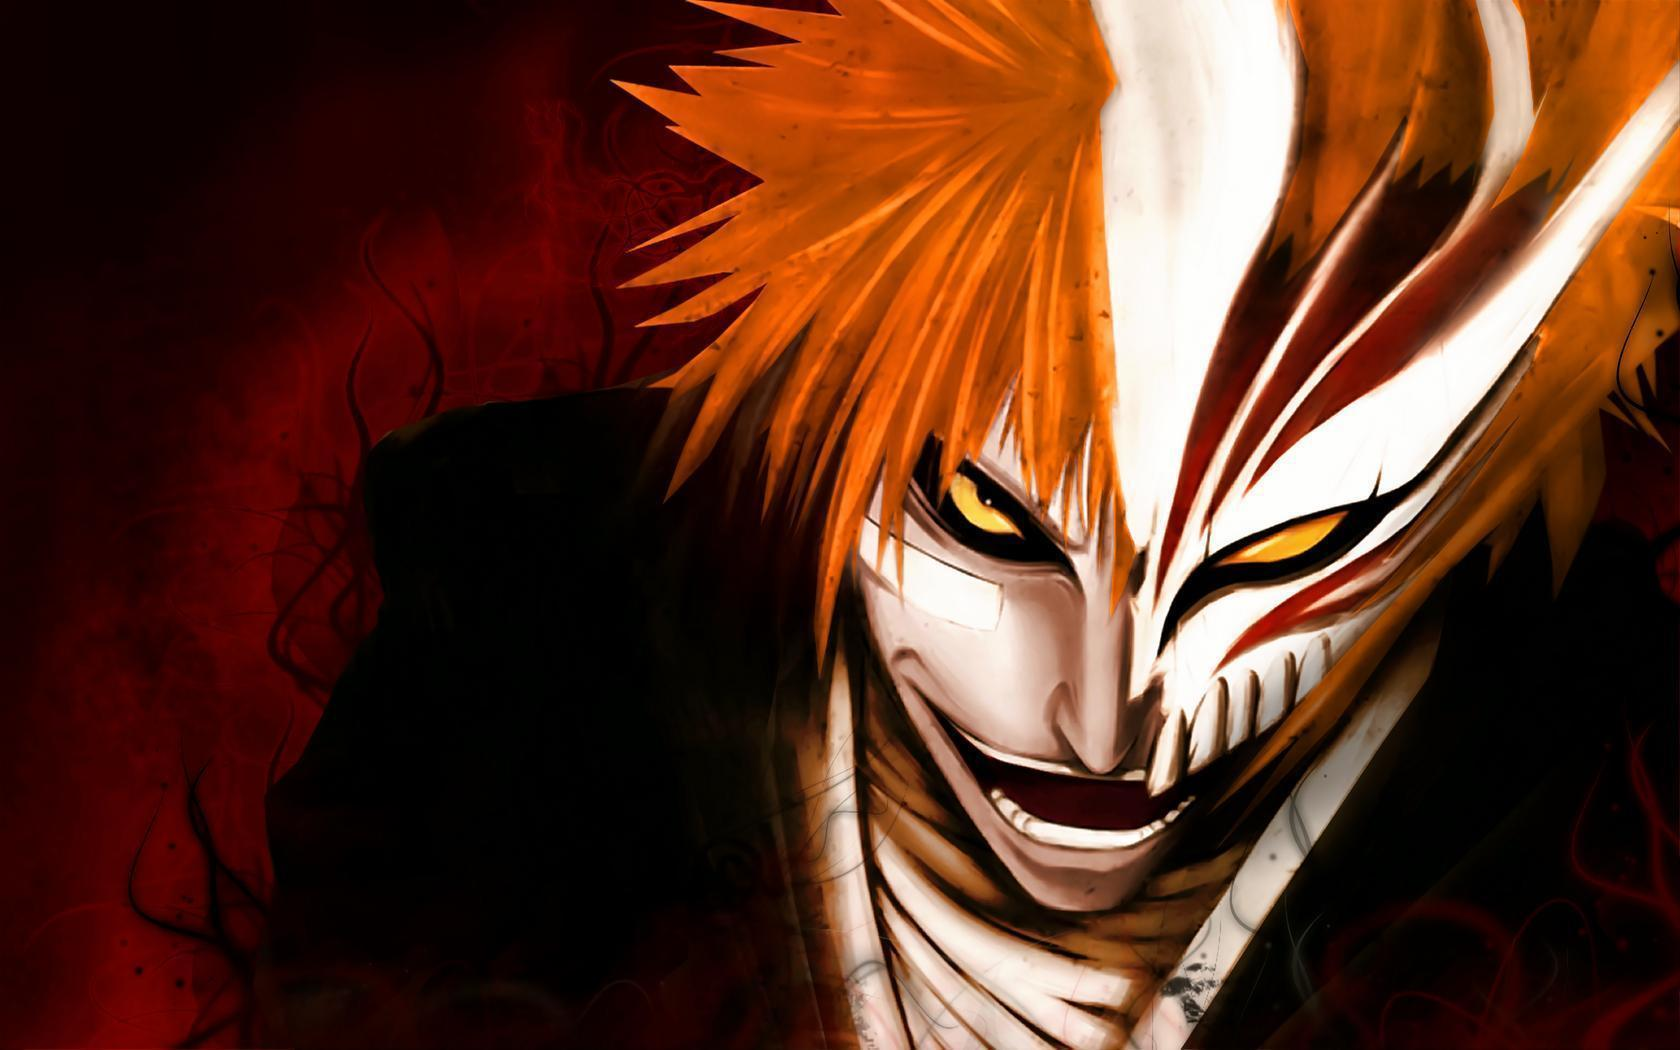 https://wallpapercave.com/wp/VNNxOyK.jpg Ichigo Hollow Wallpaper